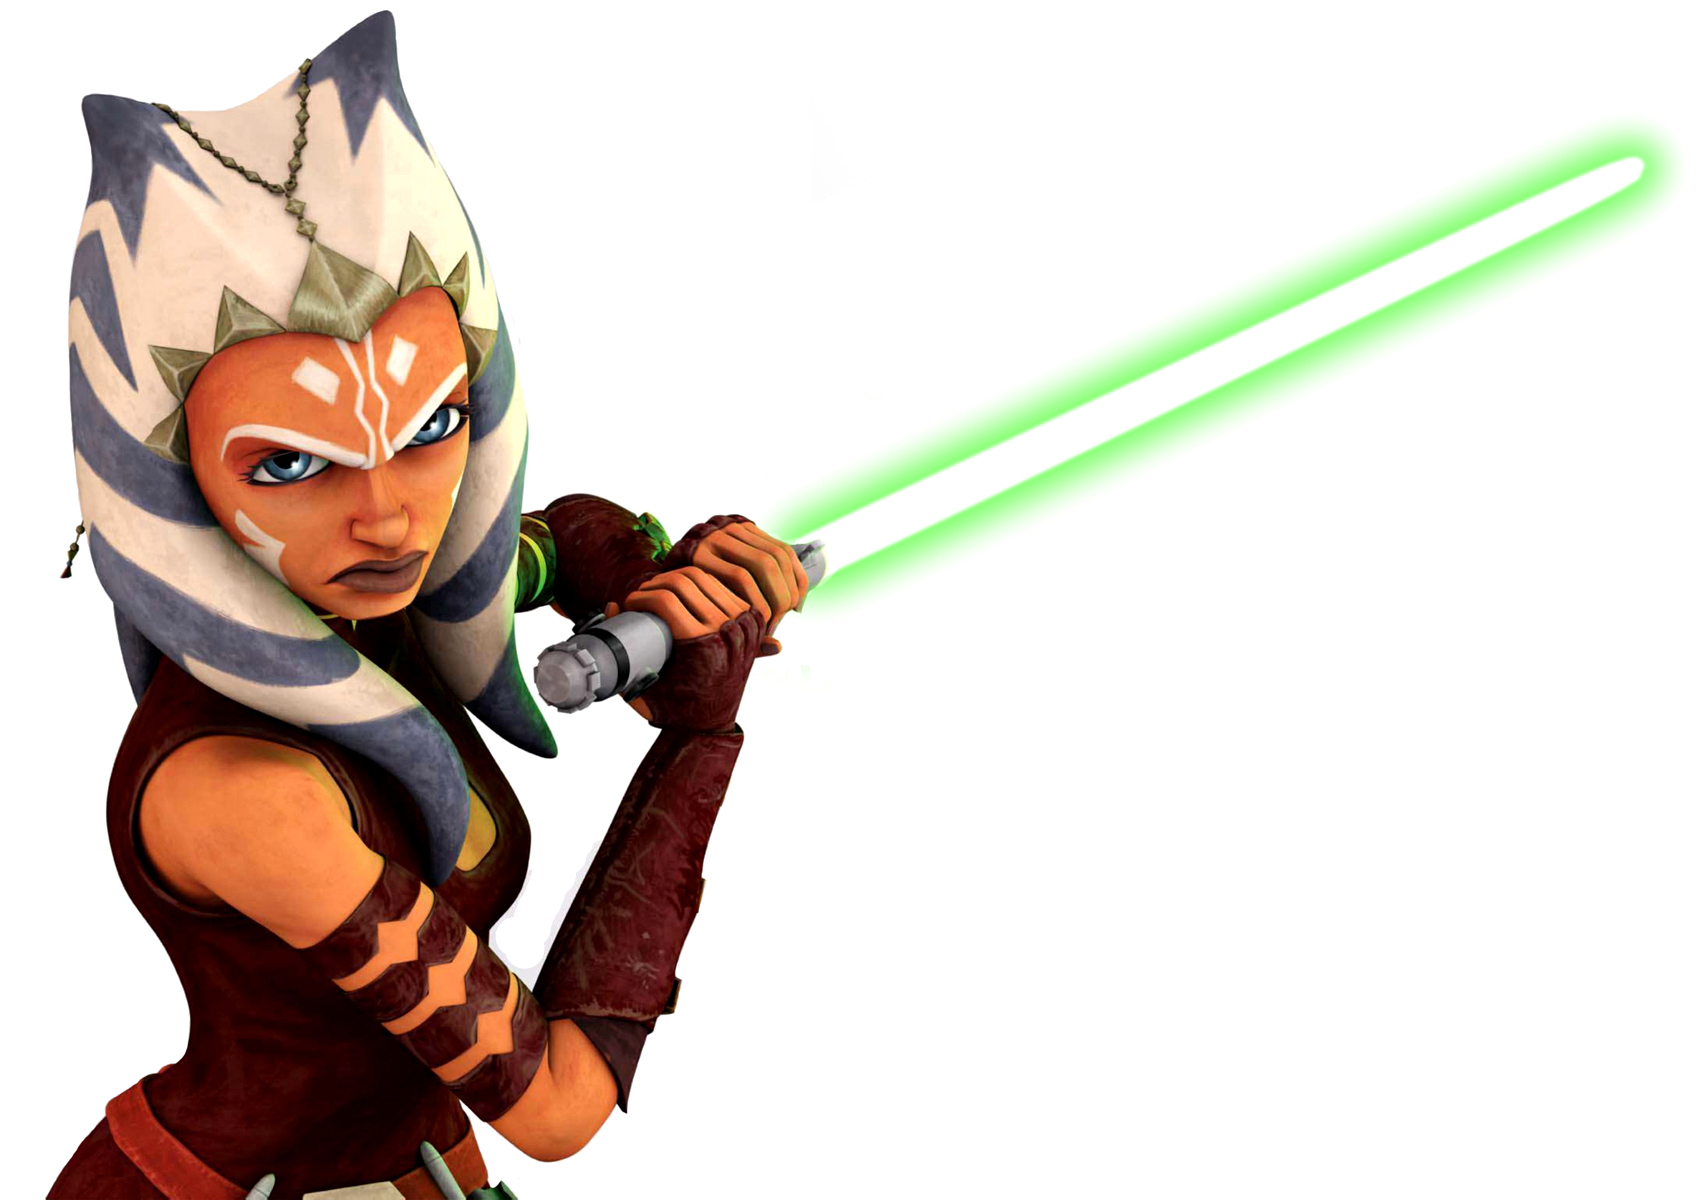 Star Wars: 5 Things You Might Not Know About Ahsoka Tano | Den of Geek